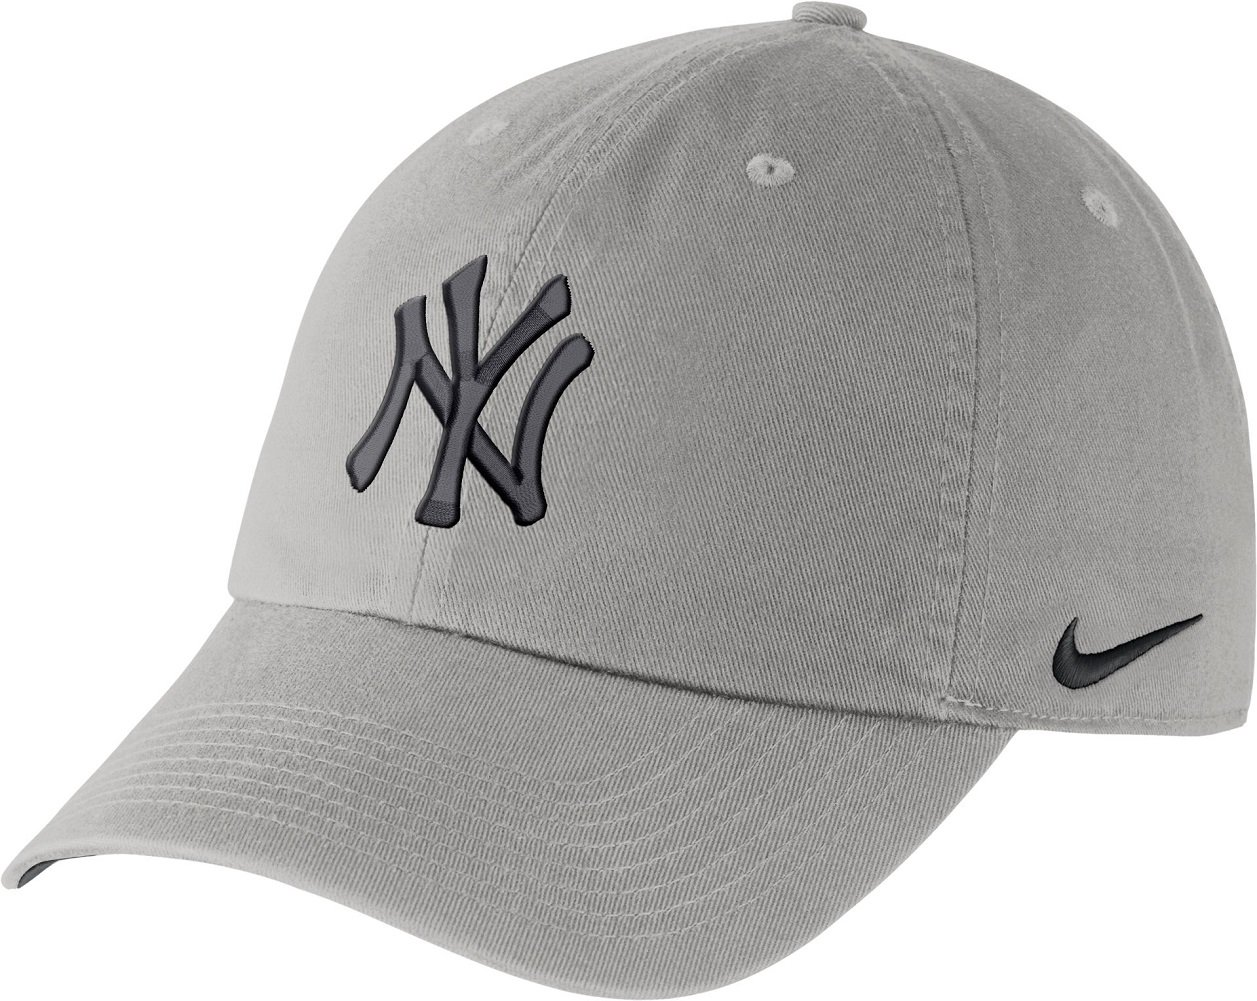 5492ed4860 Nike Men s New York Yankees Dri-Fit Classic99 Adjustable Hat One Size  Grey Midnight  Amazon.ca  Sports   Outdoors